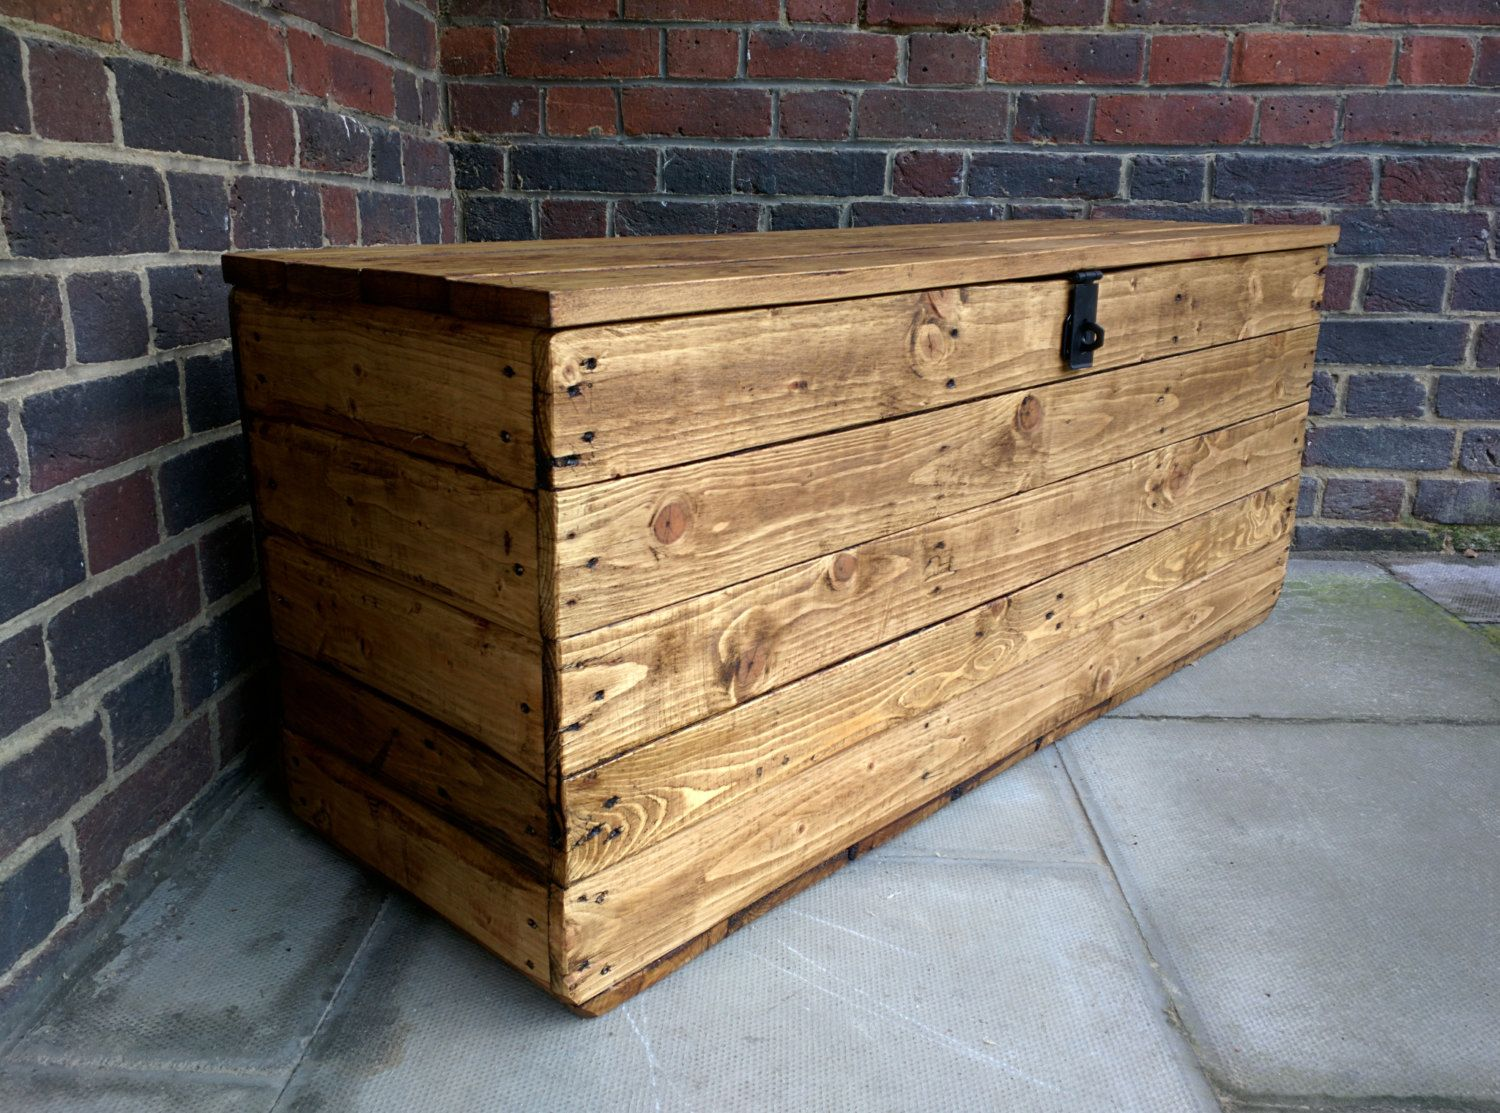 Hinged Storage Bench Part - 20: Rustic Storage Bench Seat Handcrafted From Reclaimed Wood With Hinged Lid  By TimberWolfFurniture On Etsy